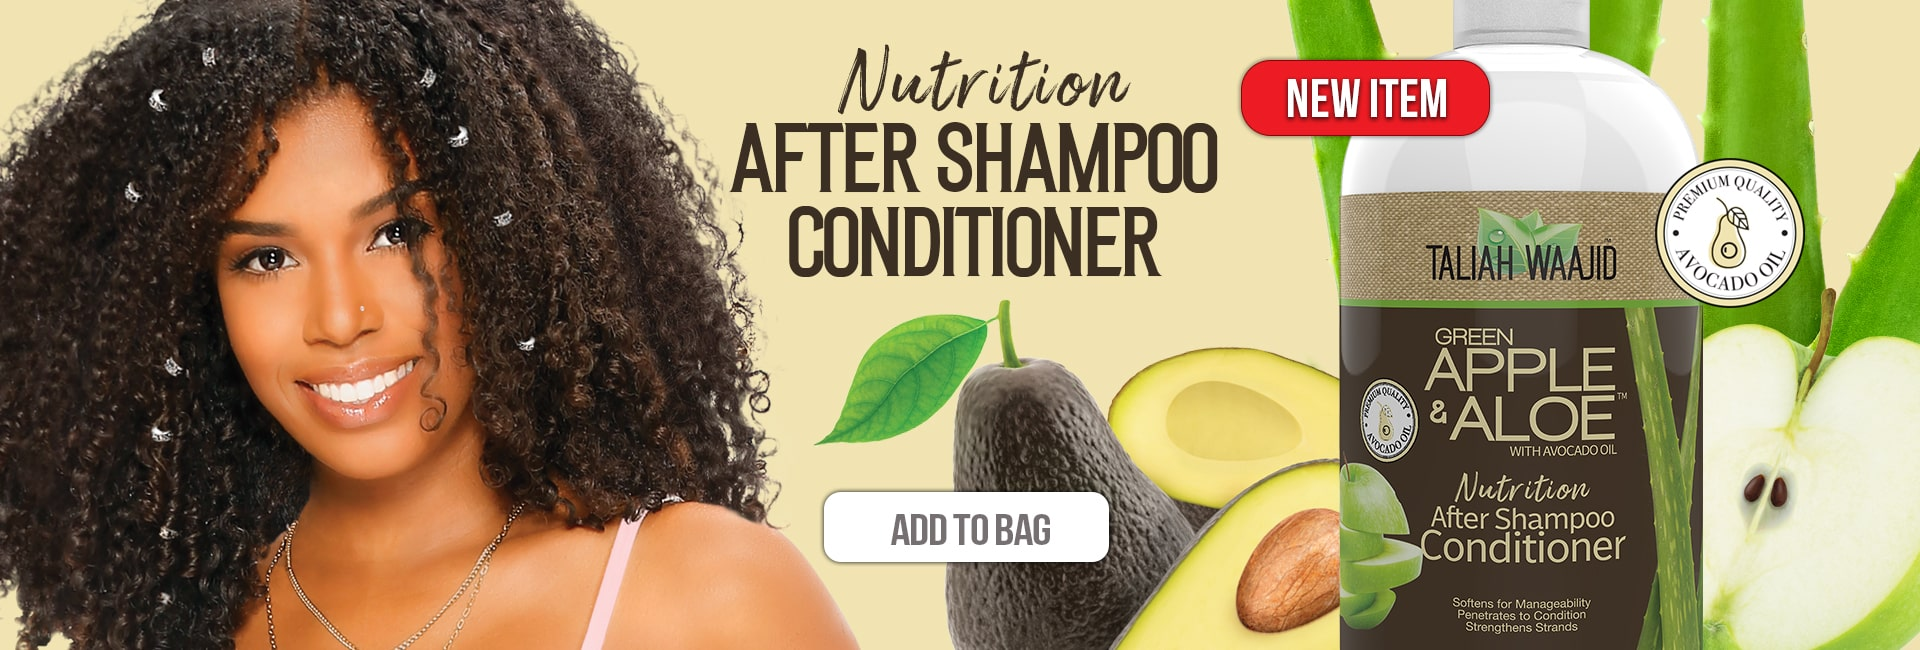 Taliah Waajid Green Apple & Aloe After Shampoo Conditioner